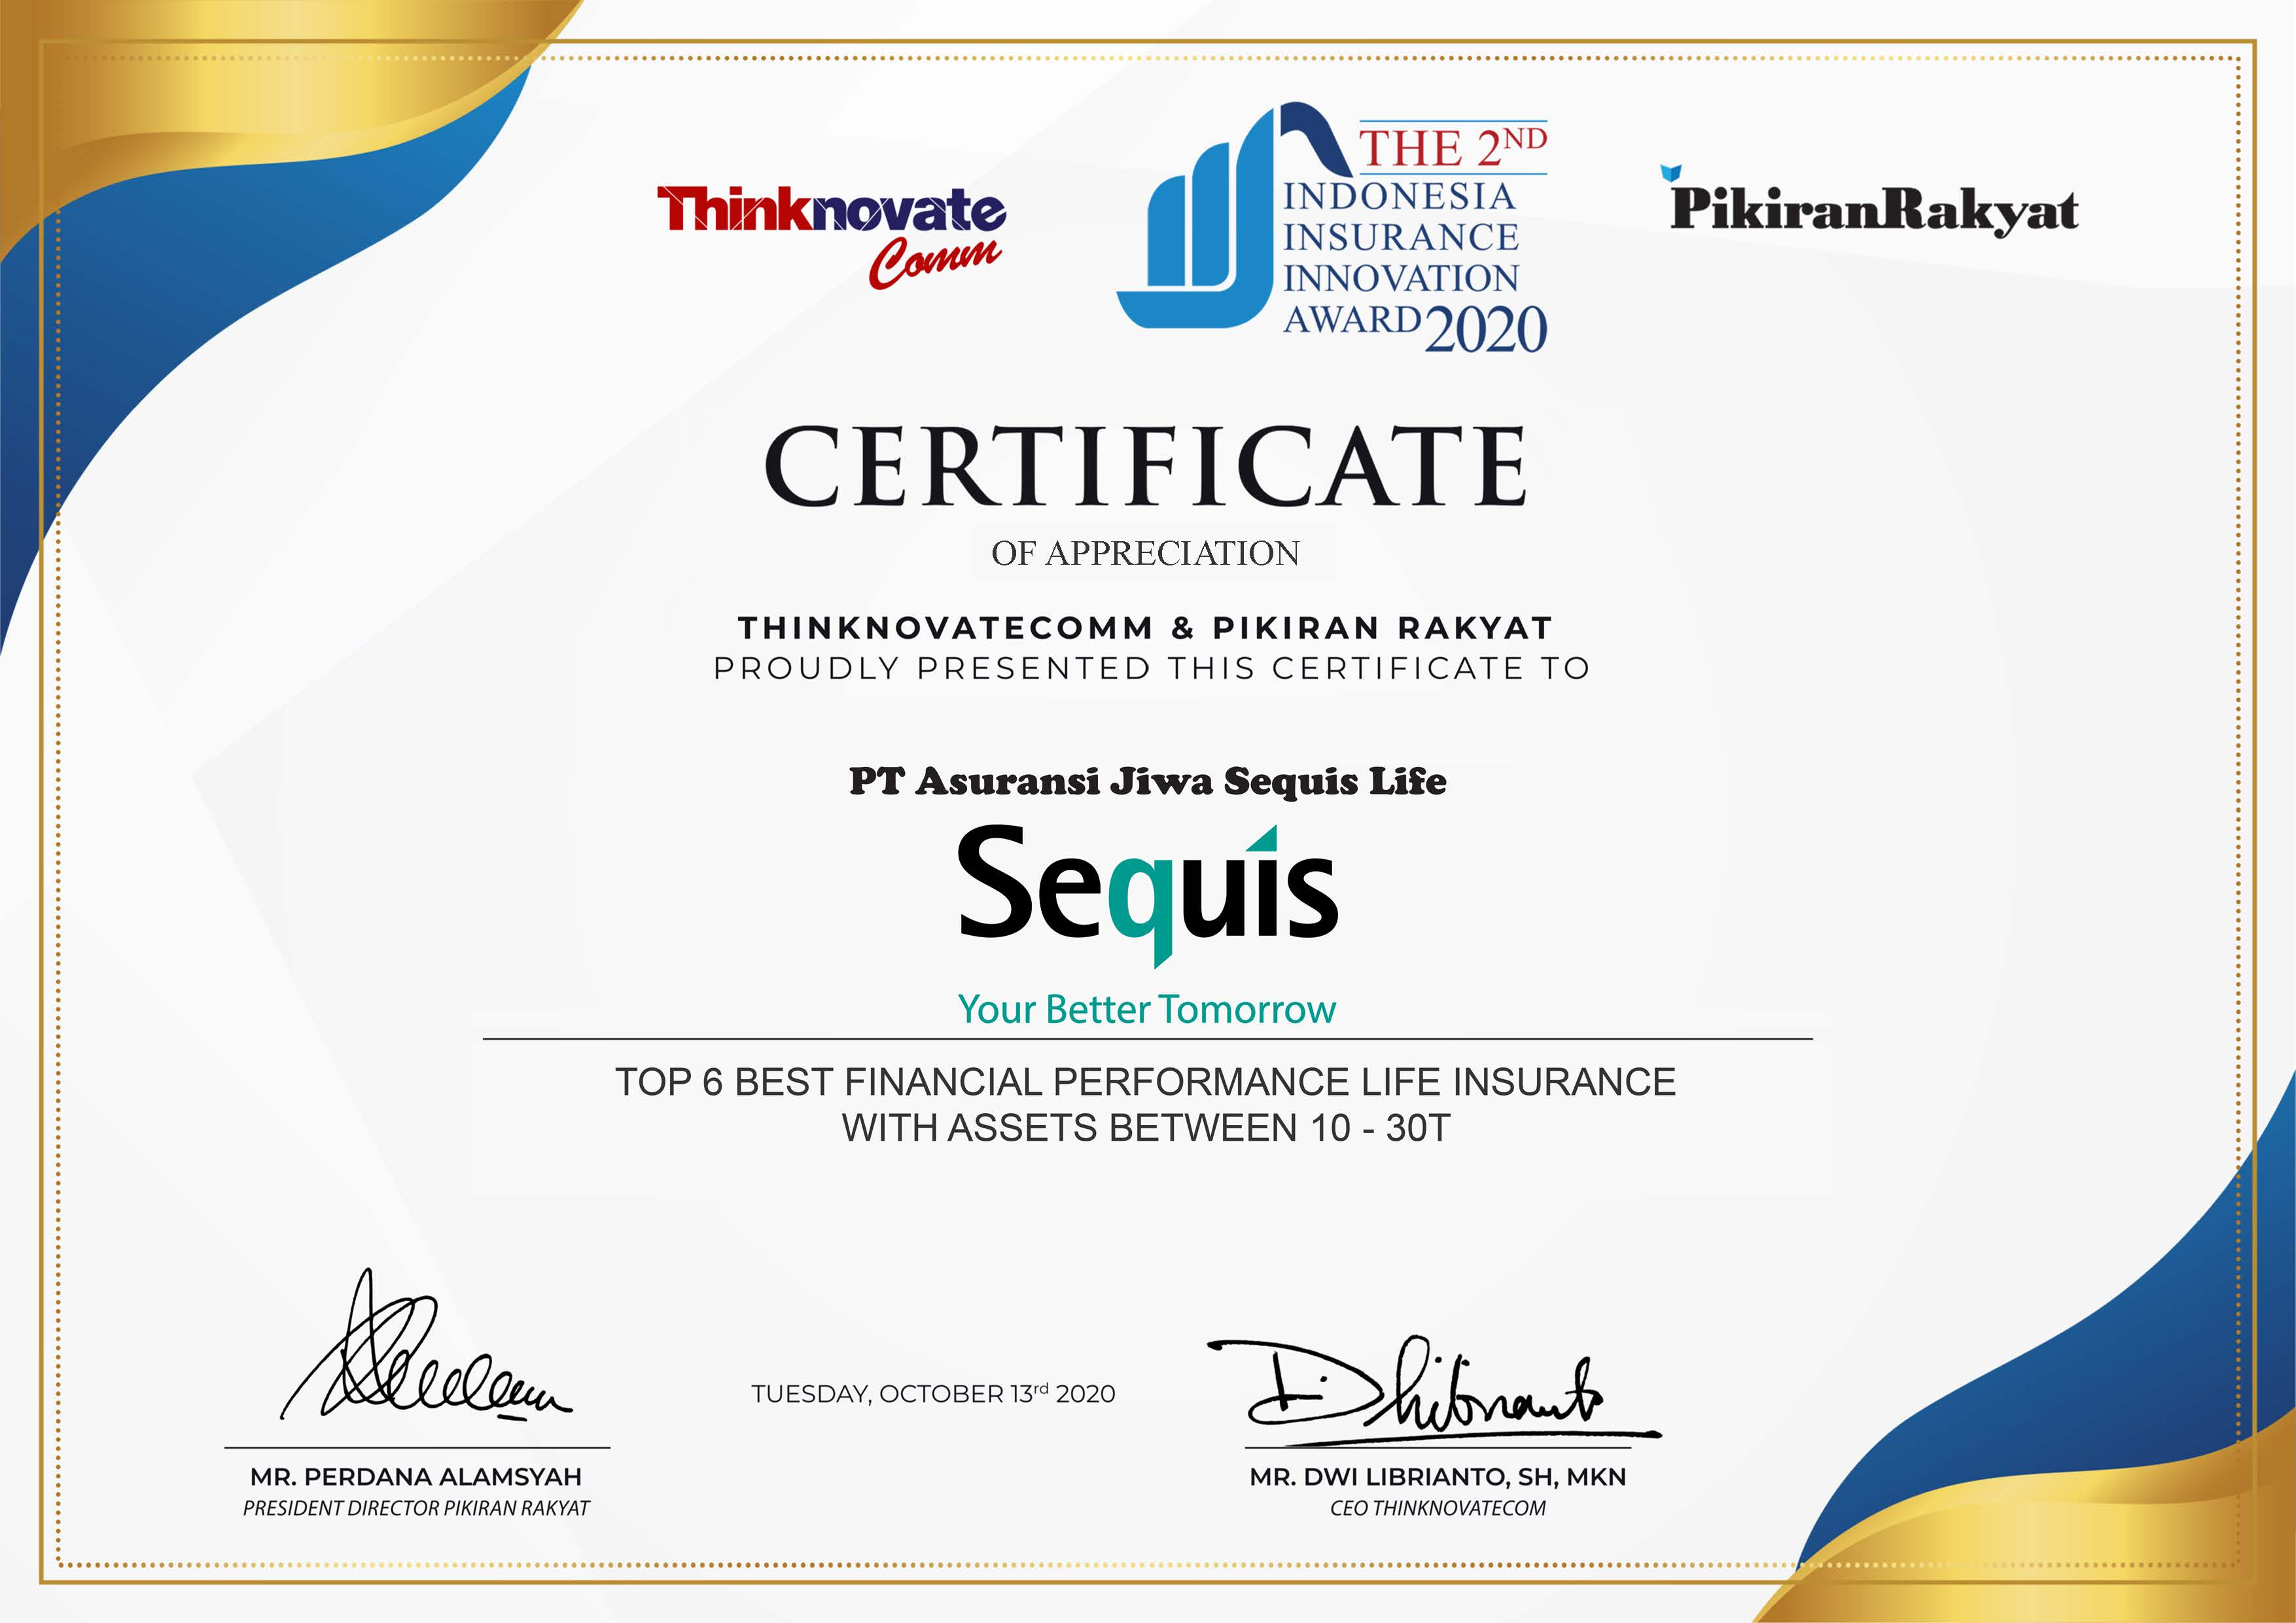 sertifikat-sql-award-indonesia-insurance-innovation-award-2020.jpg